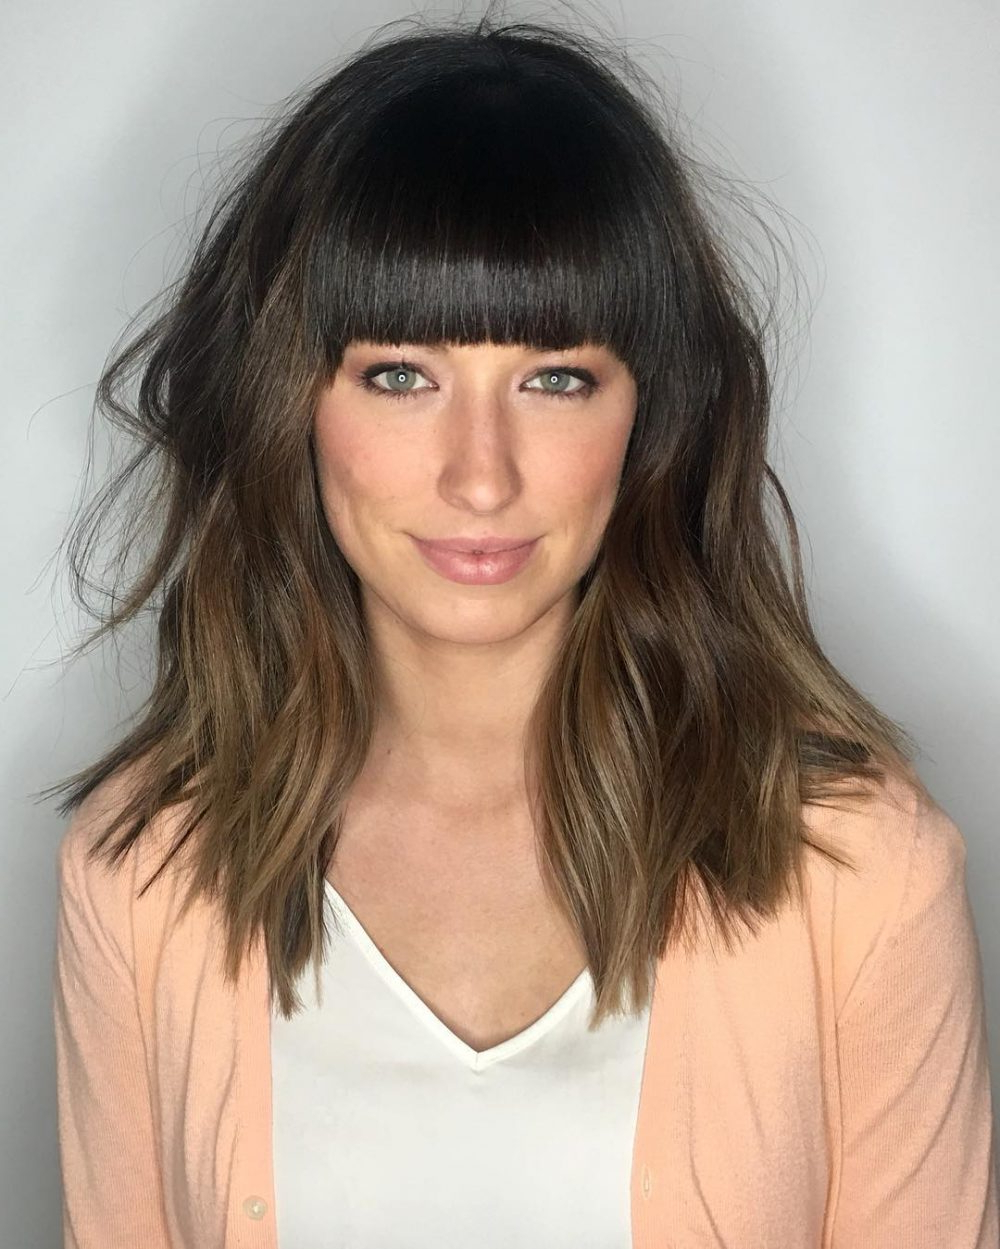 53 Popular Medium Length Hairstyles With Bangs In 2019 For Most Up To Date Black Medium Hairstyles With Bangs And Layers (Gallery 4 of 20)